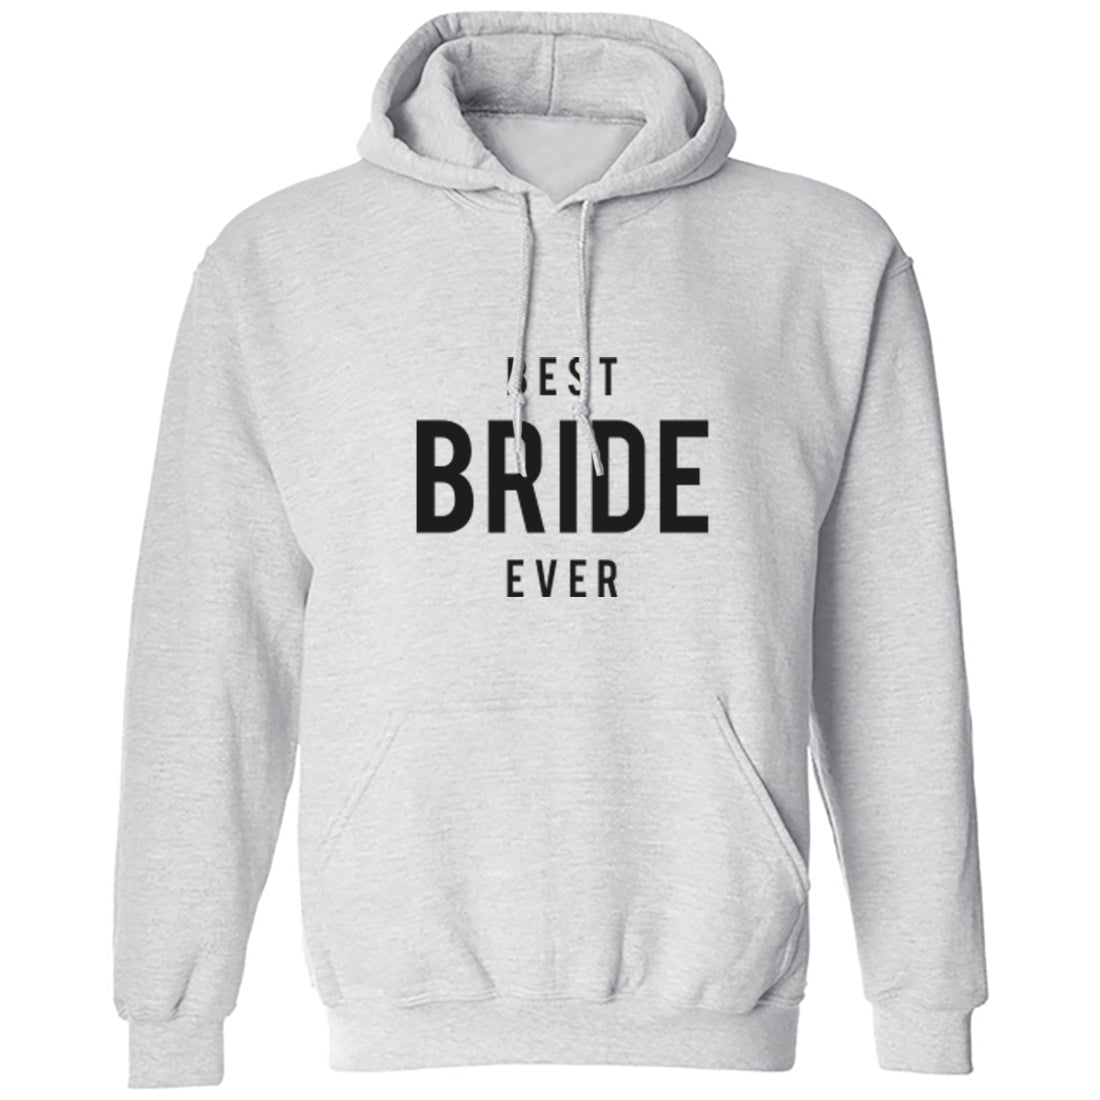 Best Bride Ever Unisex Hoodie K1485 - Illustrated Identity Ltd.